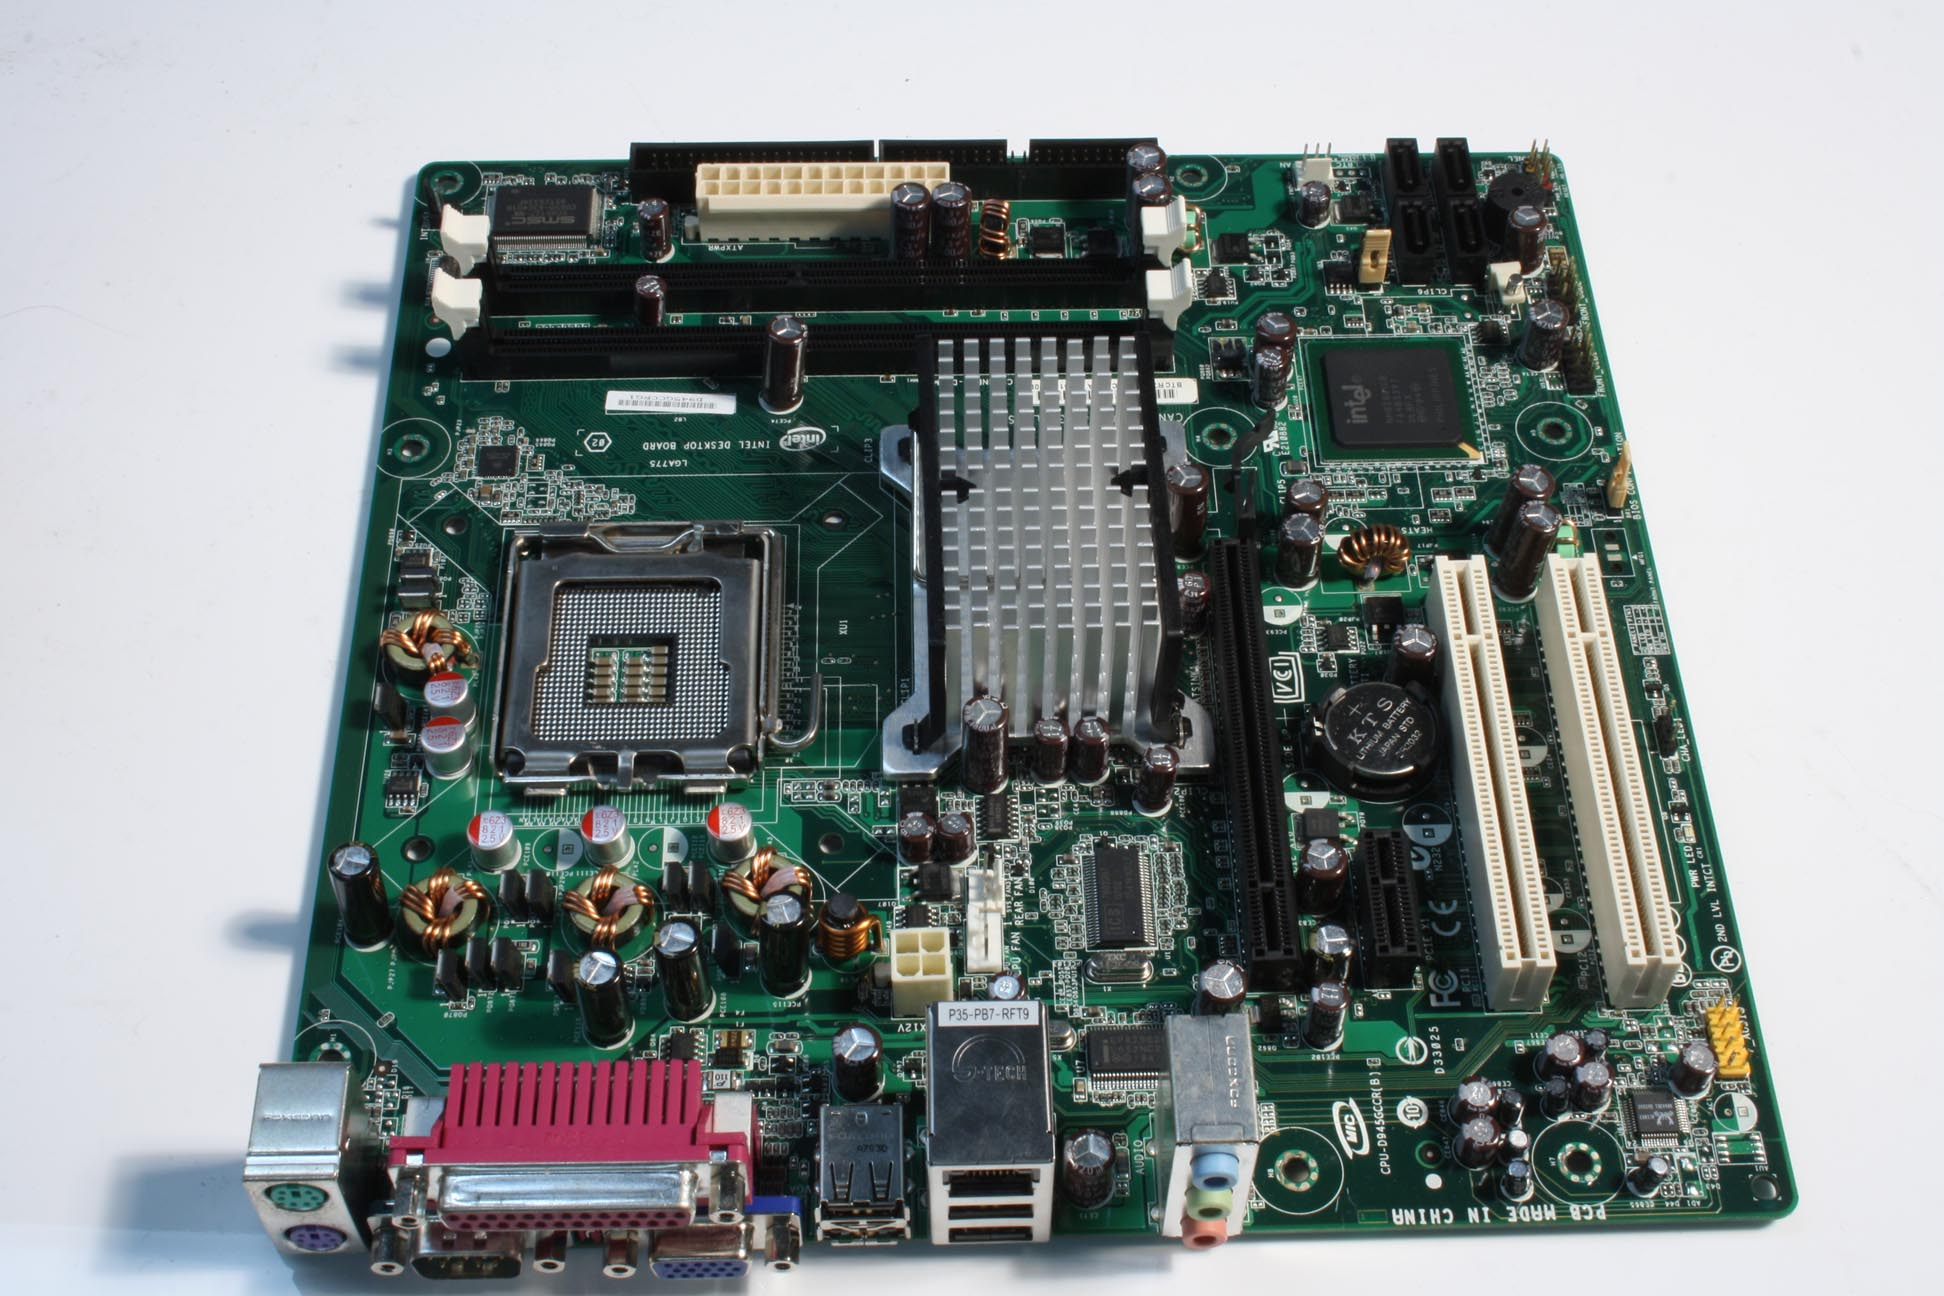 P35 Pb7 Rft9 Drivers For Windows Download Motherboard Gigabyte Update Mrc 2 If Not We Need To Know The Model Name And Of Board Intel Hd Audio Delivers Multiple Channels In Your